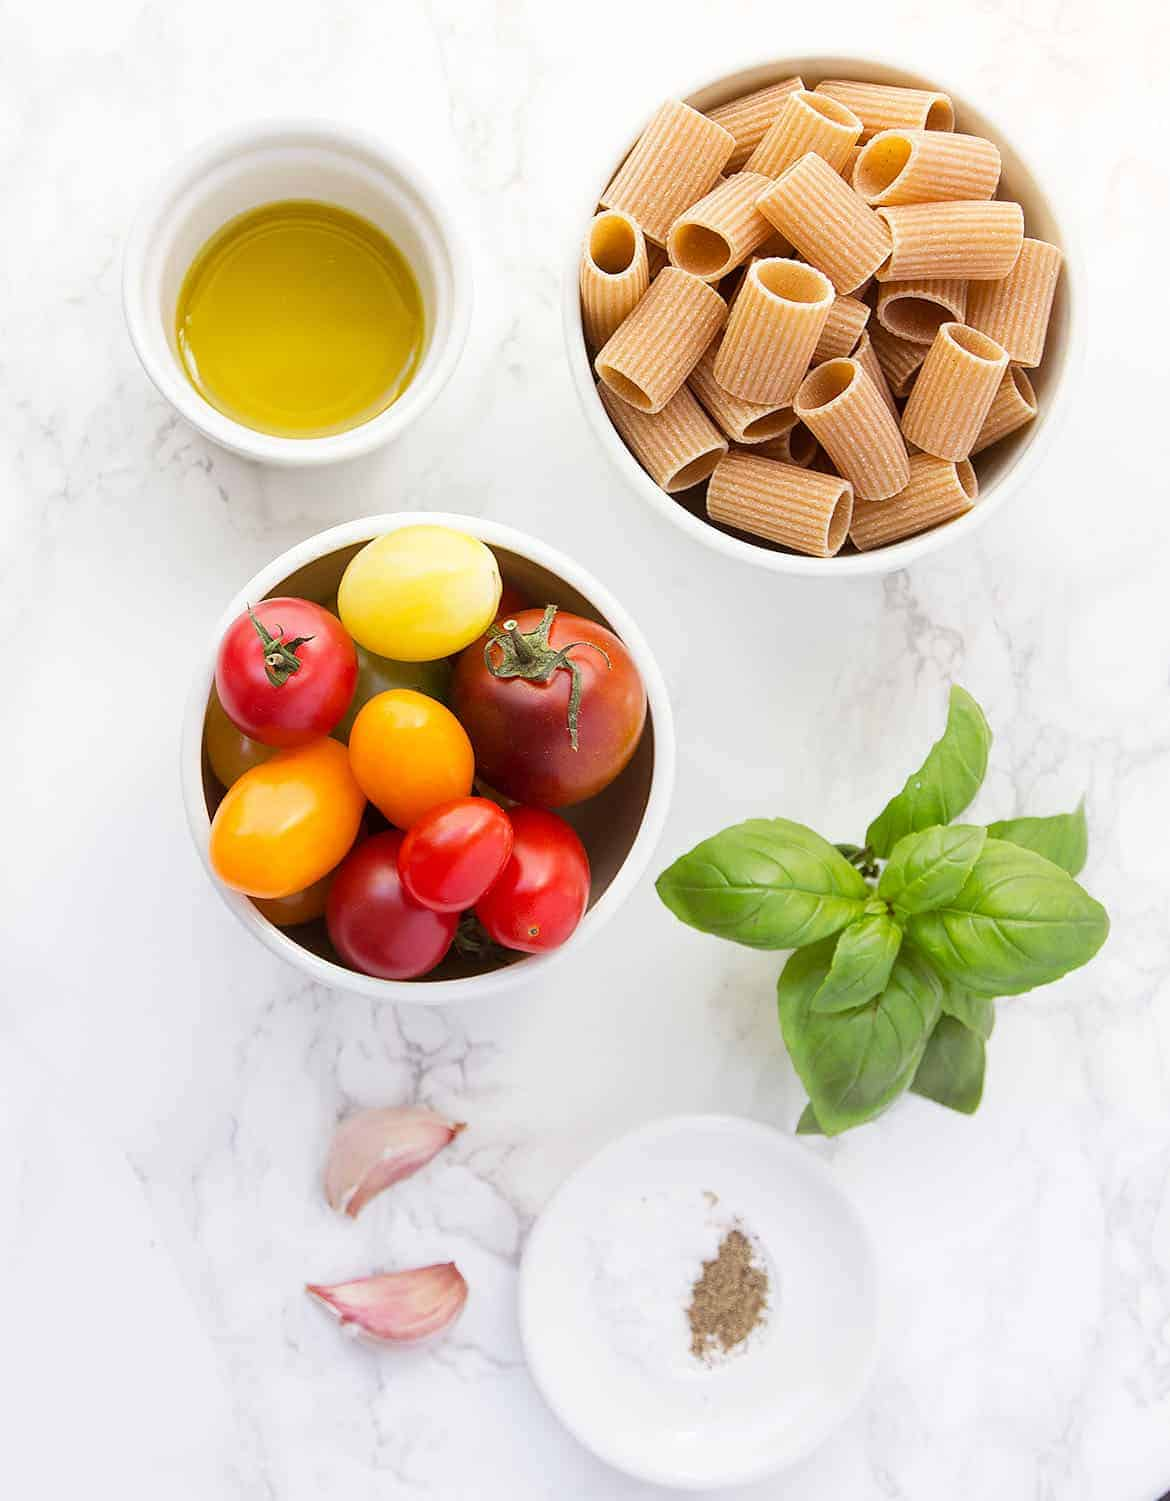 What you need to make a raw cherry tomato pasta.